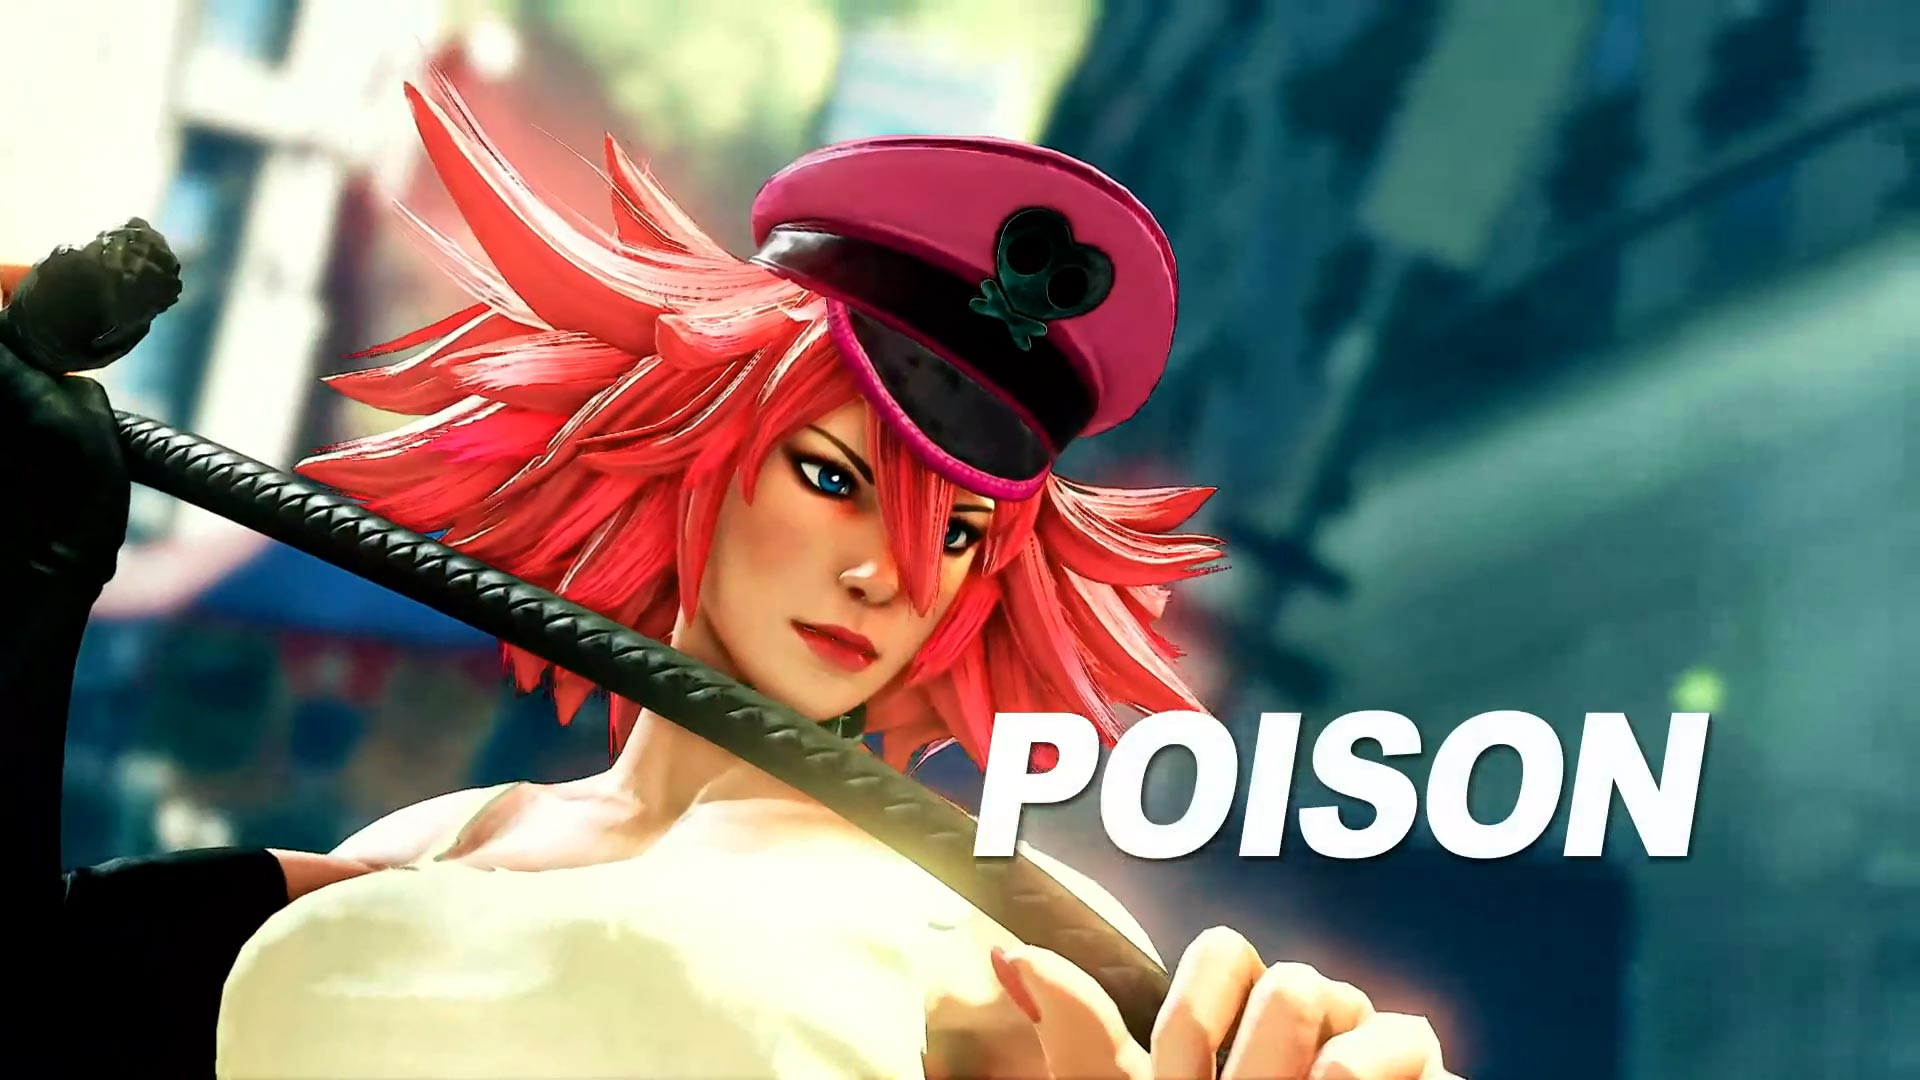 Street Fighter 5 leaked gallery of E. Honda, Lucia and Poison 8 out of 35 image gallery